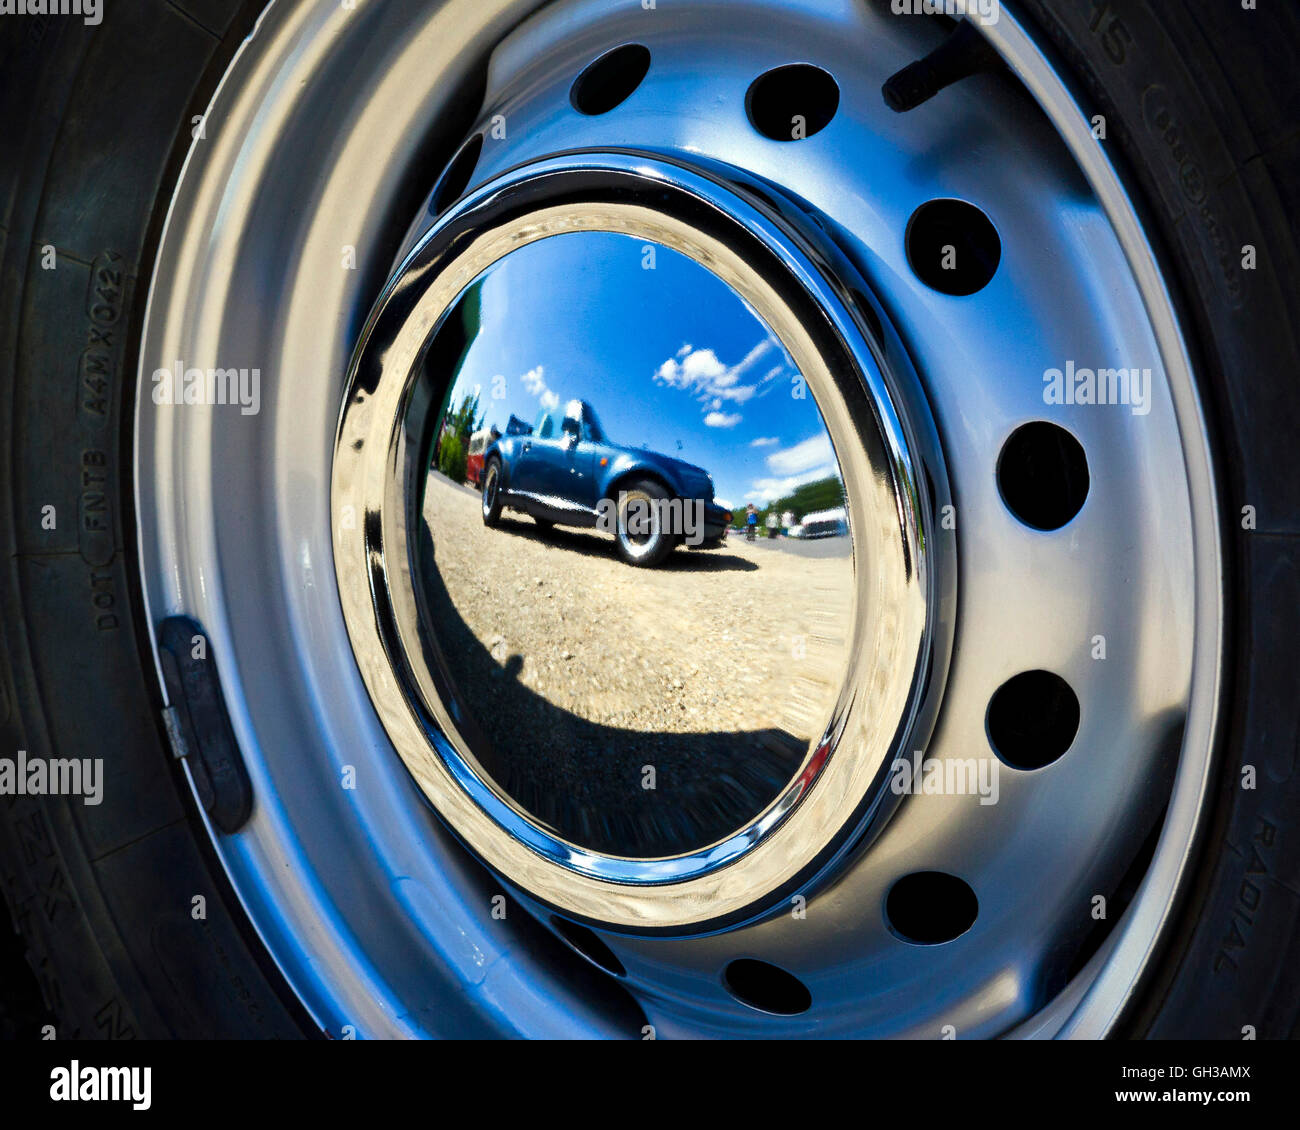 reflection of a vintage car in the wheel cover of another vintage vehicle stock image